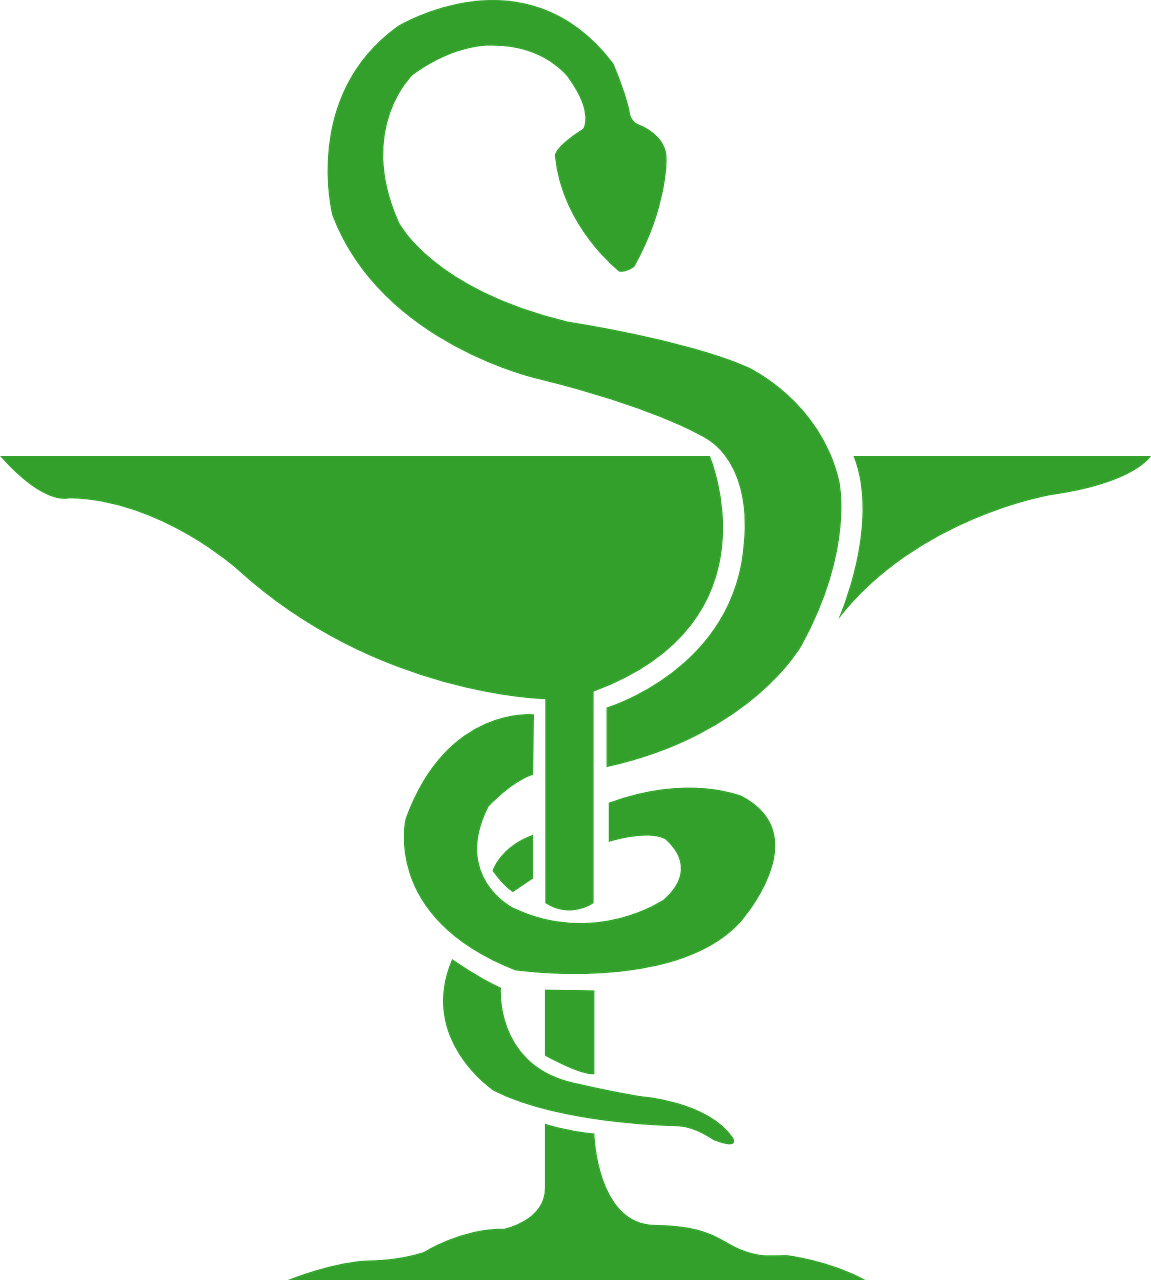 What does the snake represent on the medical symbol image snake medical caduceus symbol transparent image snake snake medical caduceus symbol transparent image buycottarizona biocorpaavc